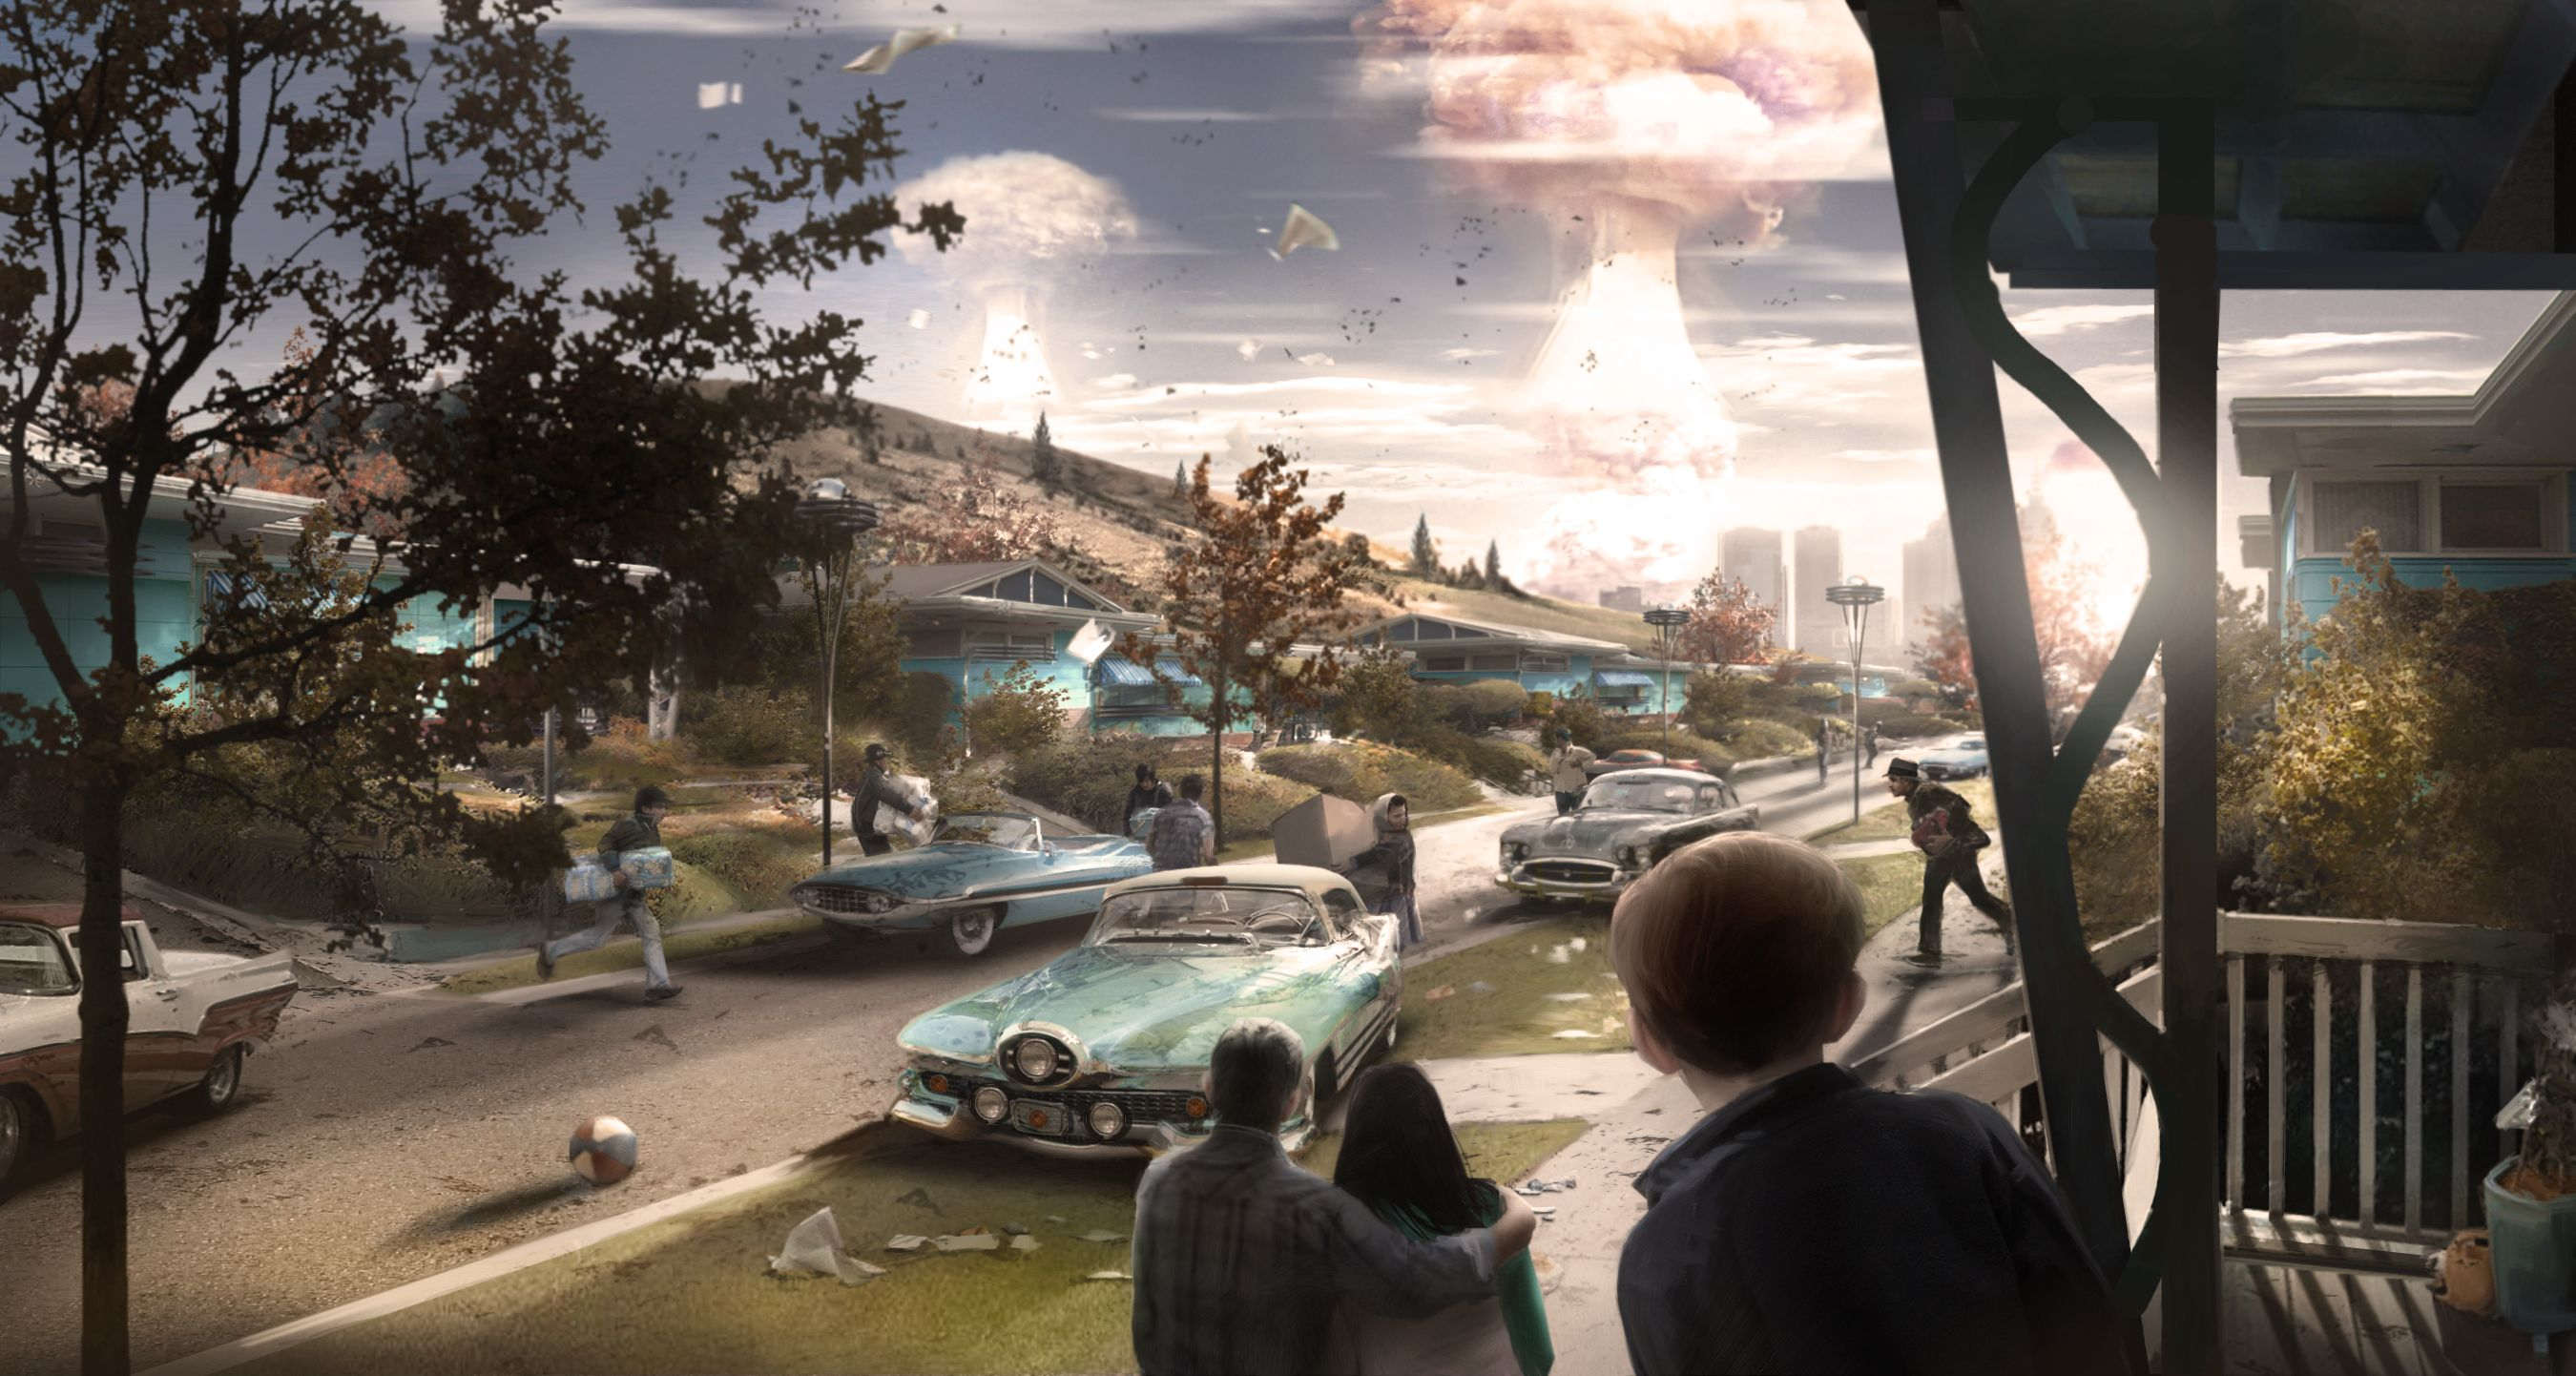 Fallout 4s concept art is wallpaper worthy Polygon 2700x1442